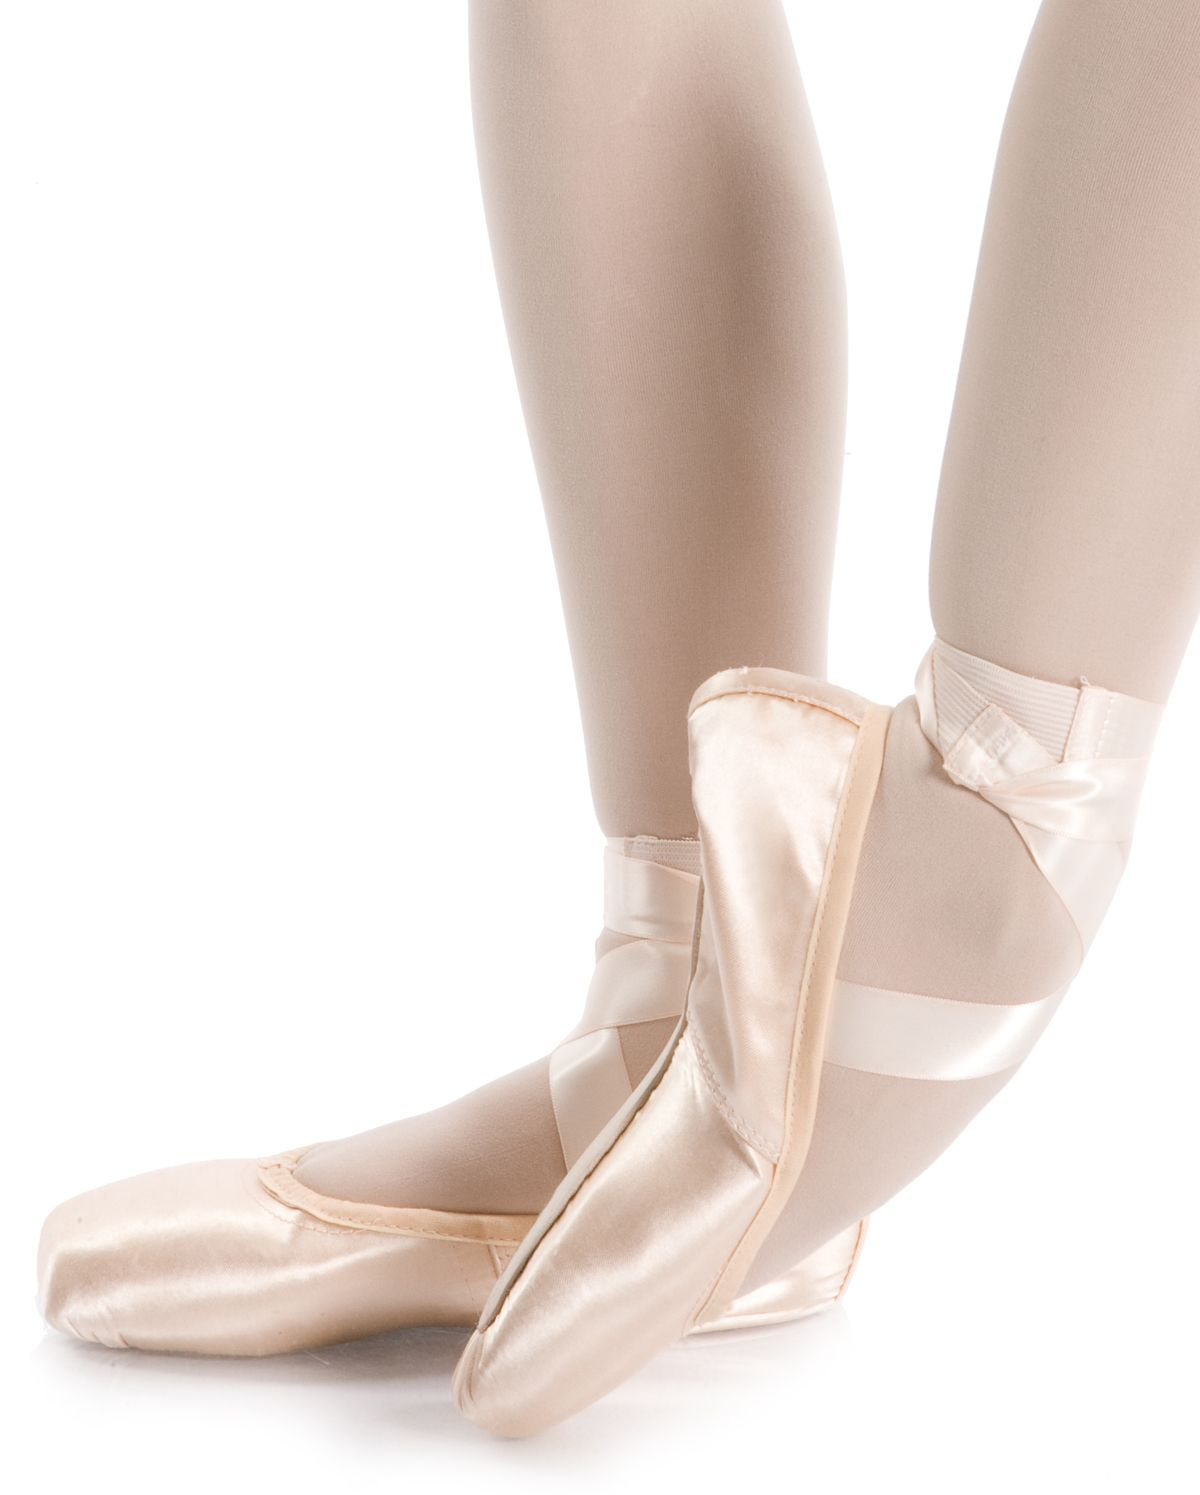 Freed Demi Pointe Pointe shoes, Shoes, Me too shoes